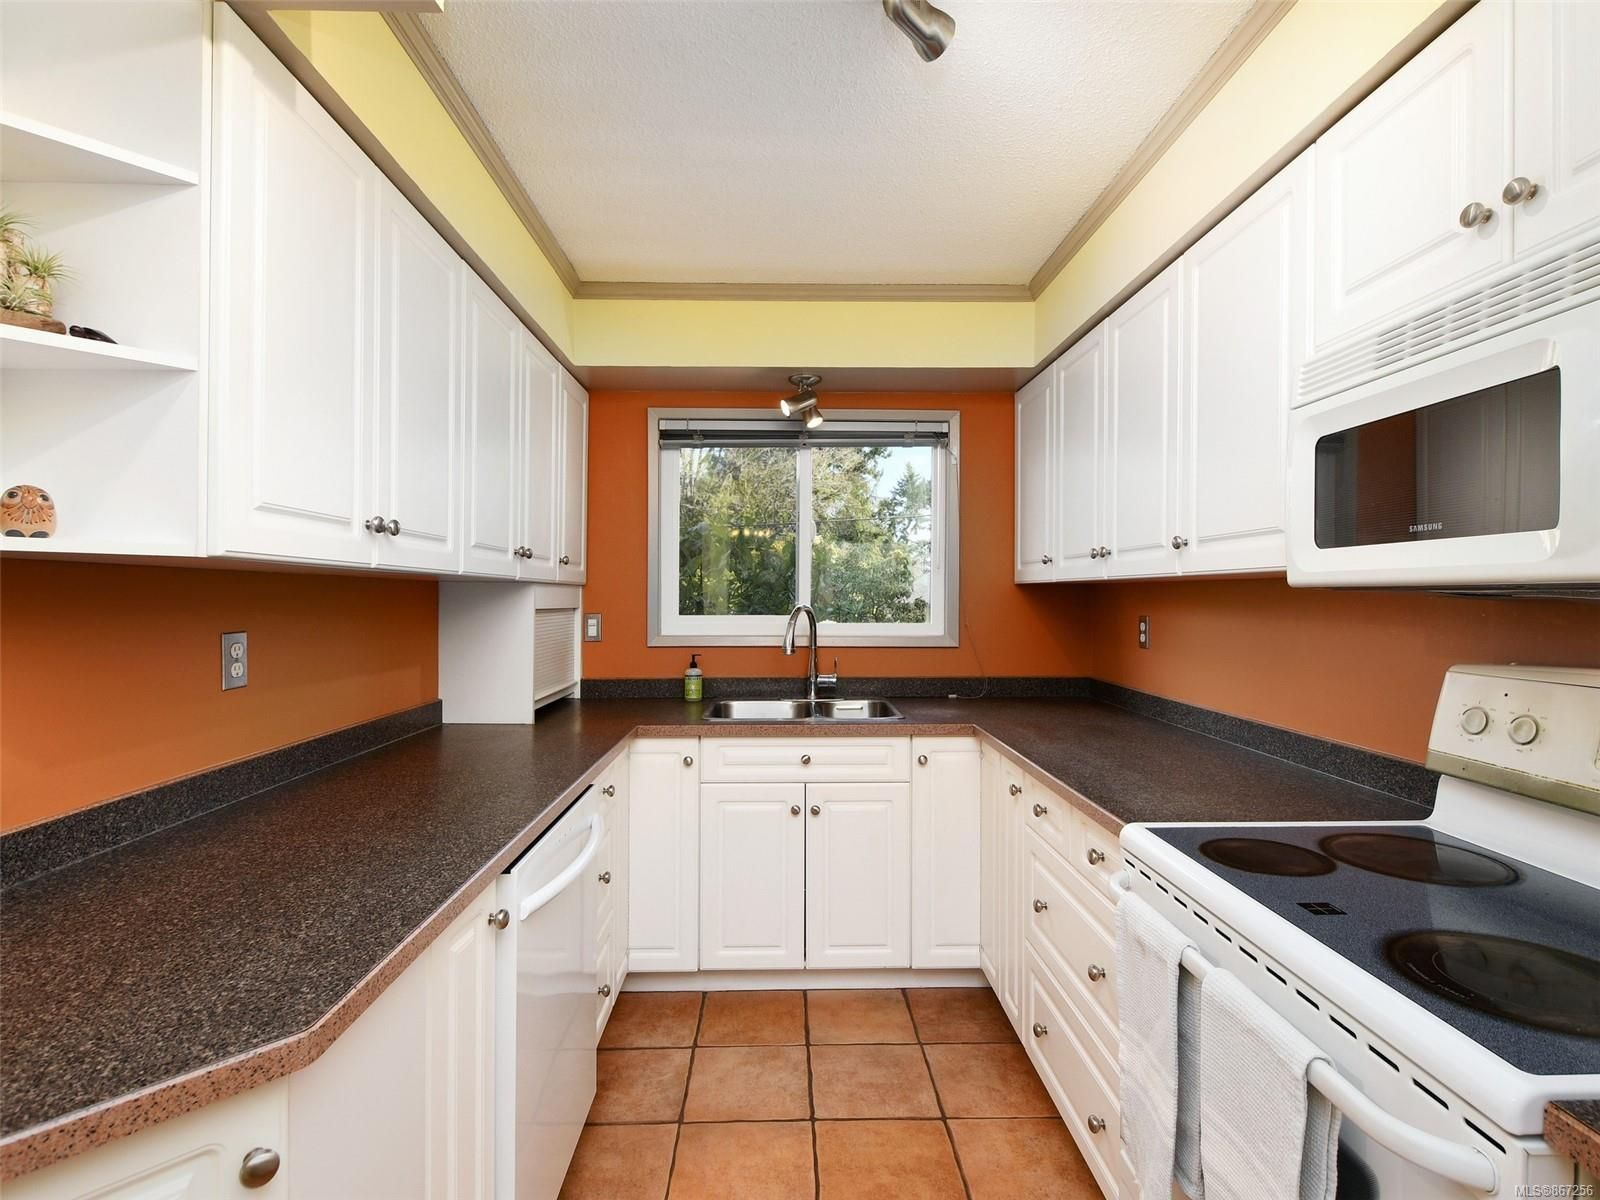 Photo 7: Photos: 5 869 Swan St in : SE Swan Lake Row/Townhouse for sale (Saanich East)  : MLS®# 867256